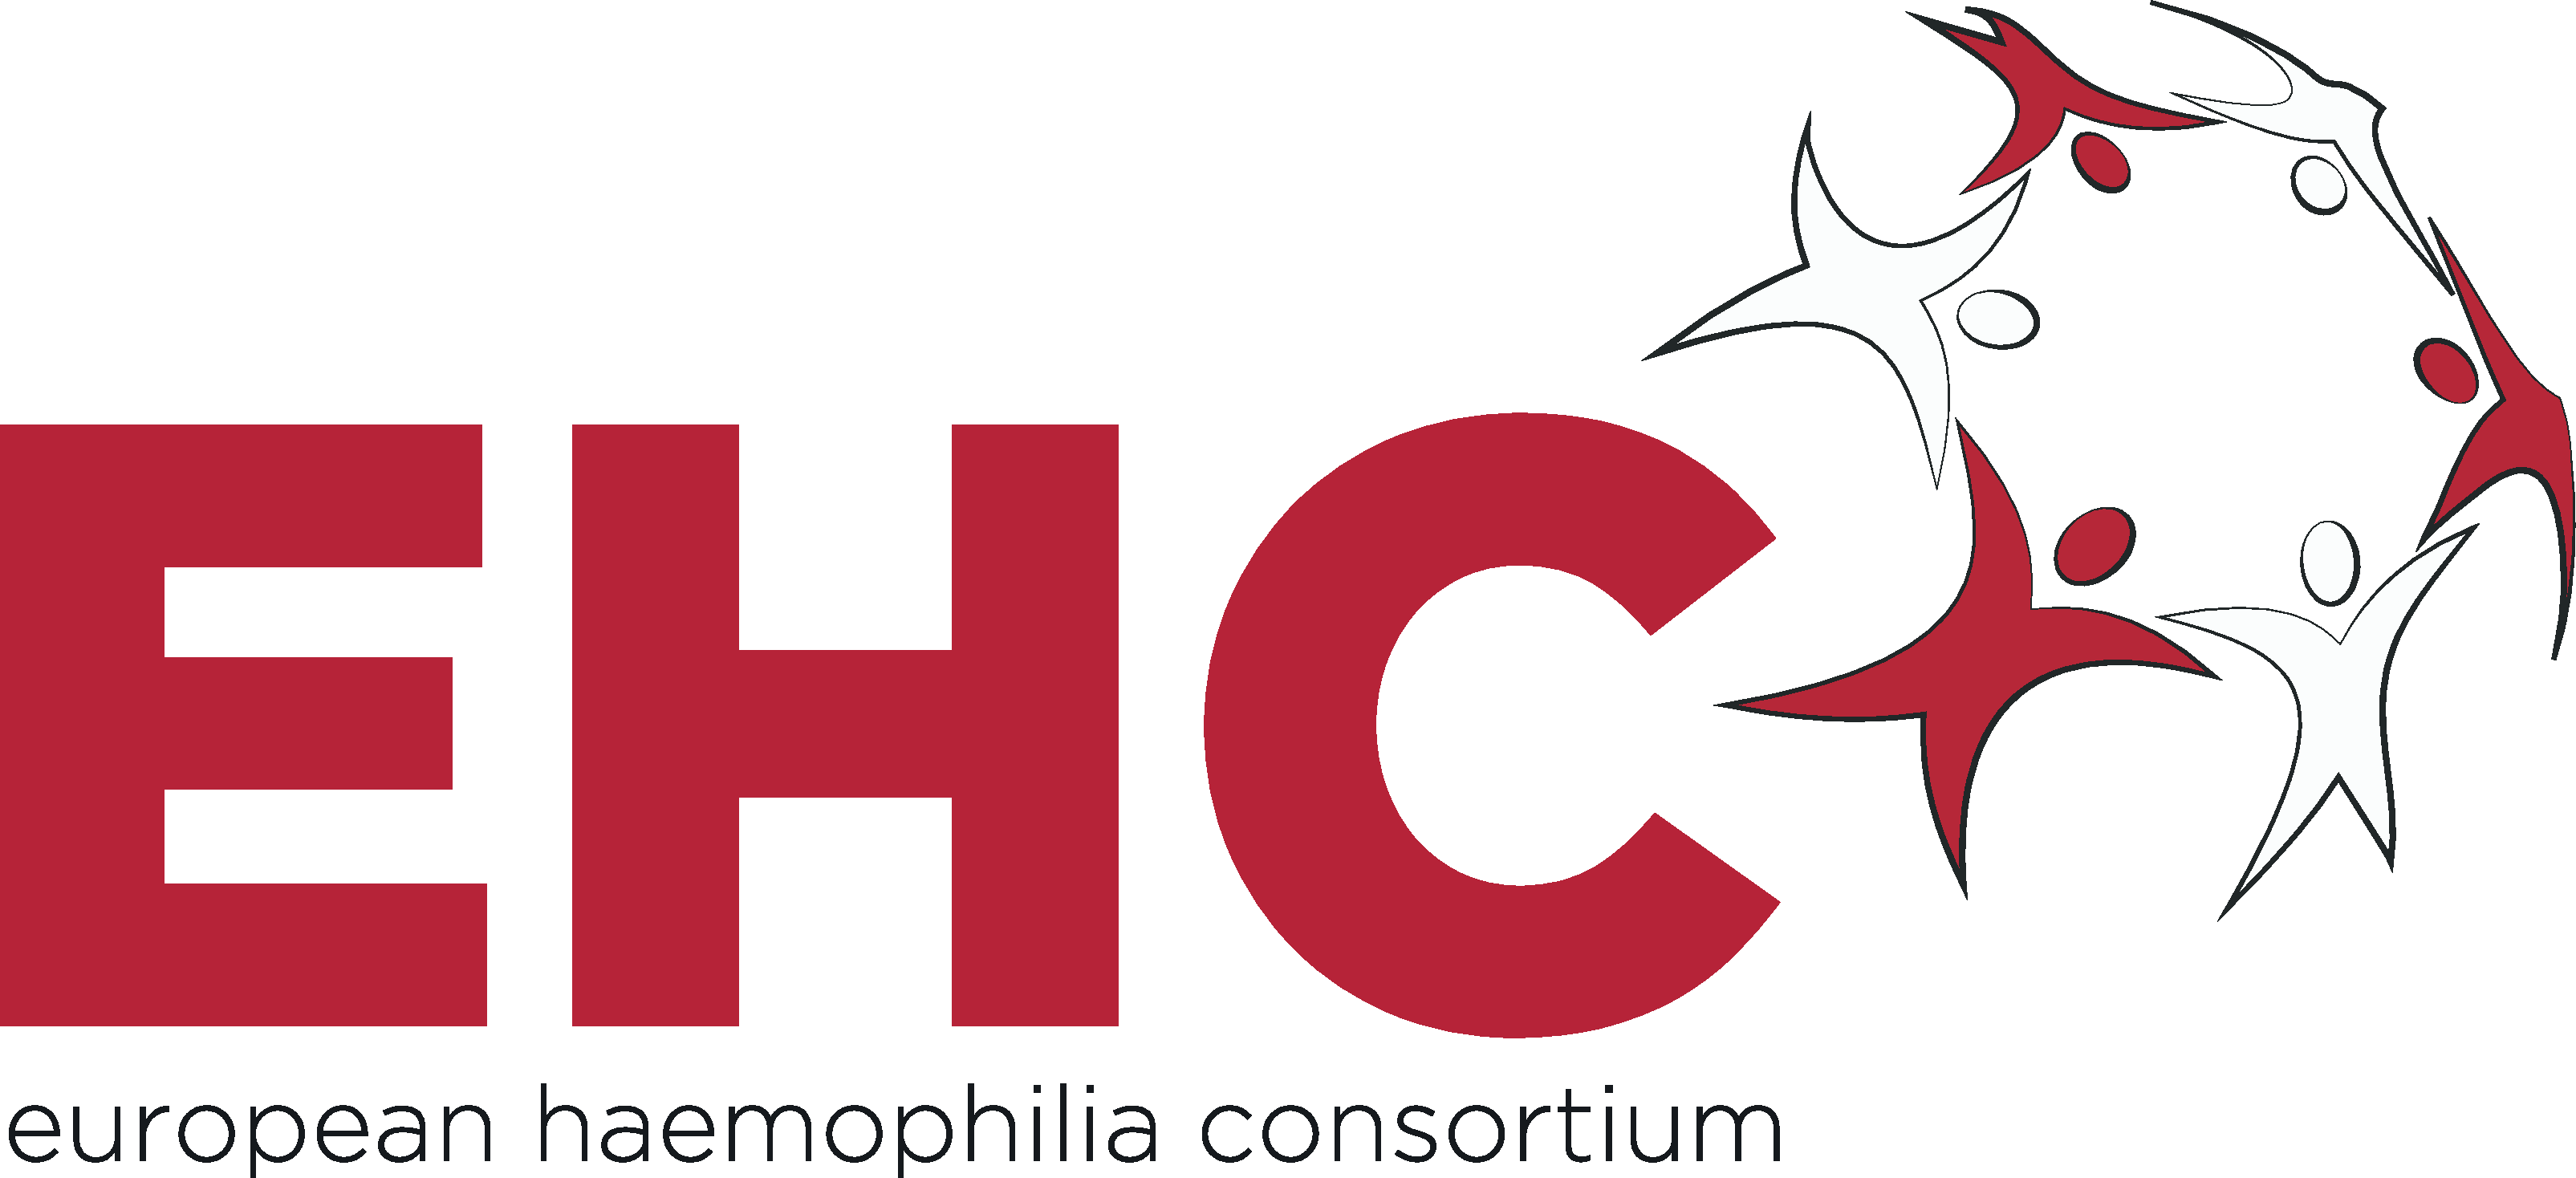 EHC – European Haemophilia Consortium -  - /ehc-publishes-new-issue-of-period-review-in-novel-therapies-in-haemophilia/?pk_campaign=feed&pk_kwd=ehc-publishes-new-issue-of-period-review-in-novel-therapies-in-haemophilia